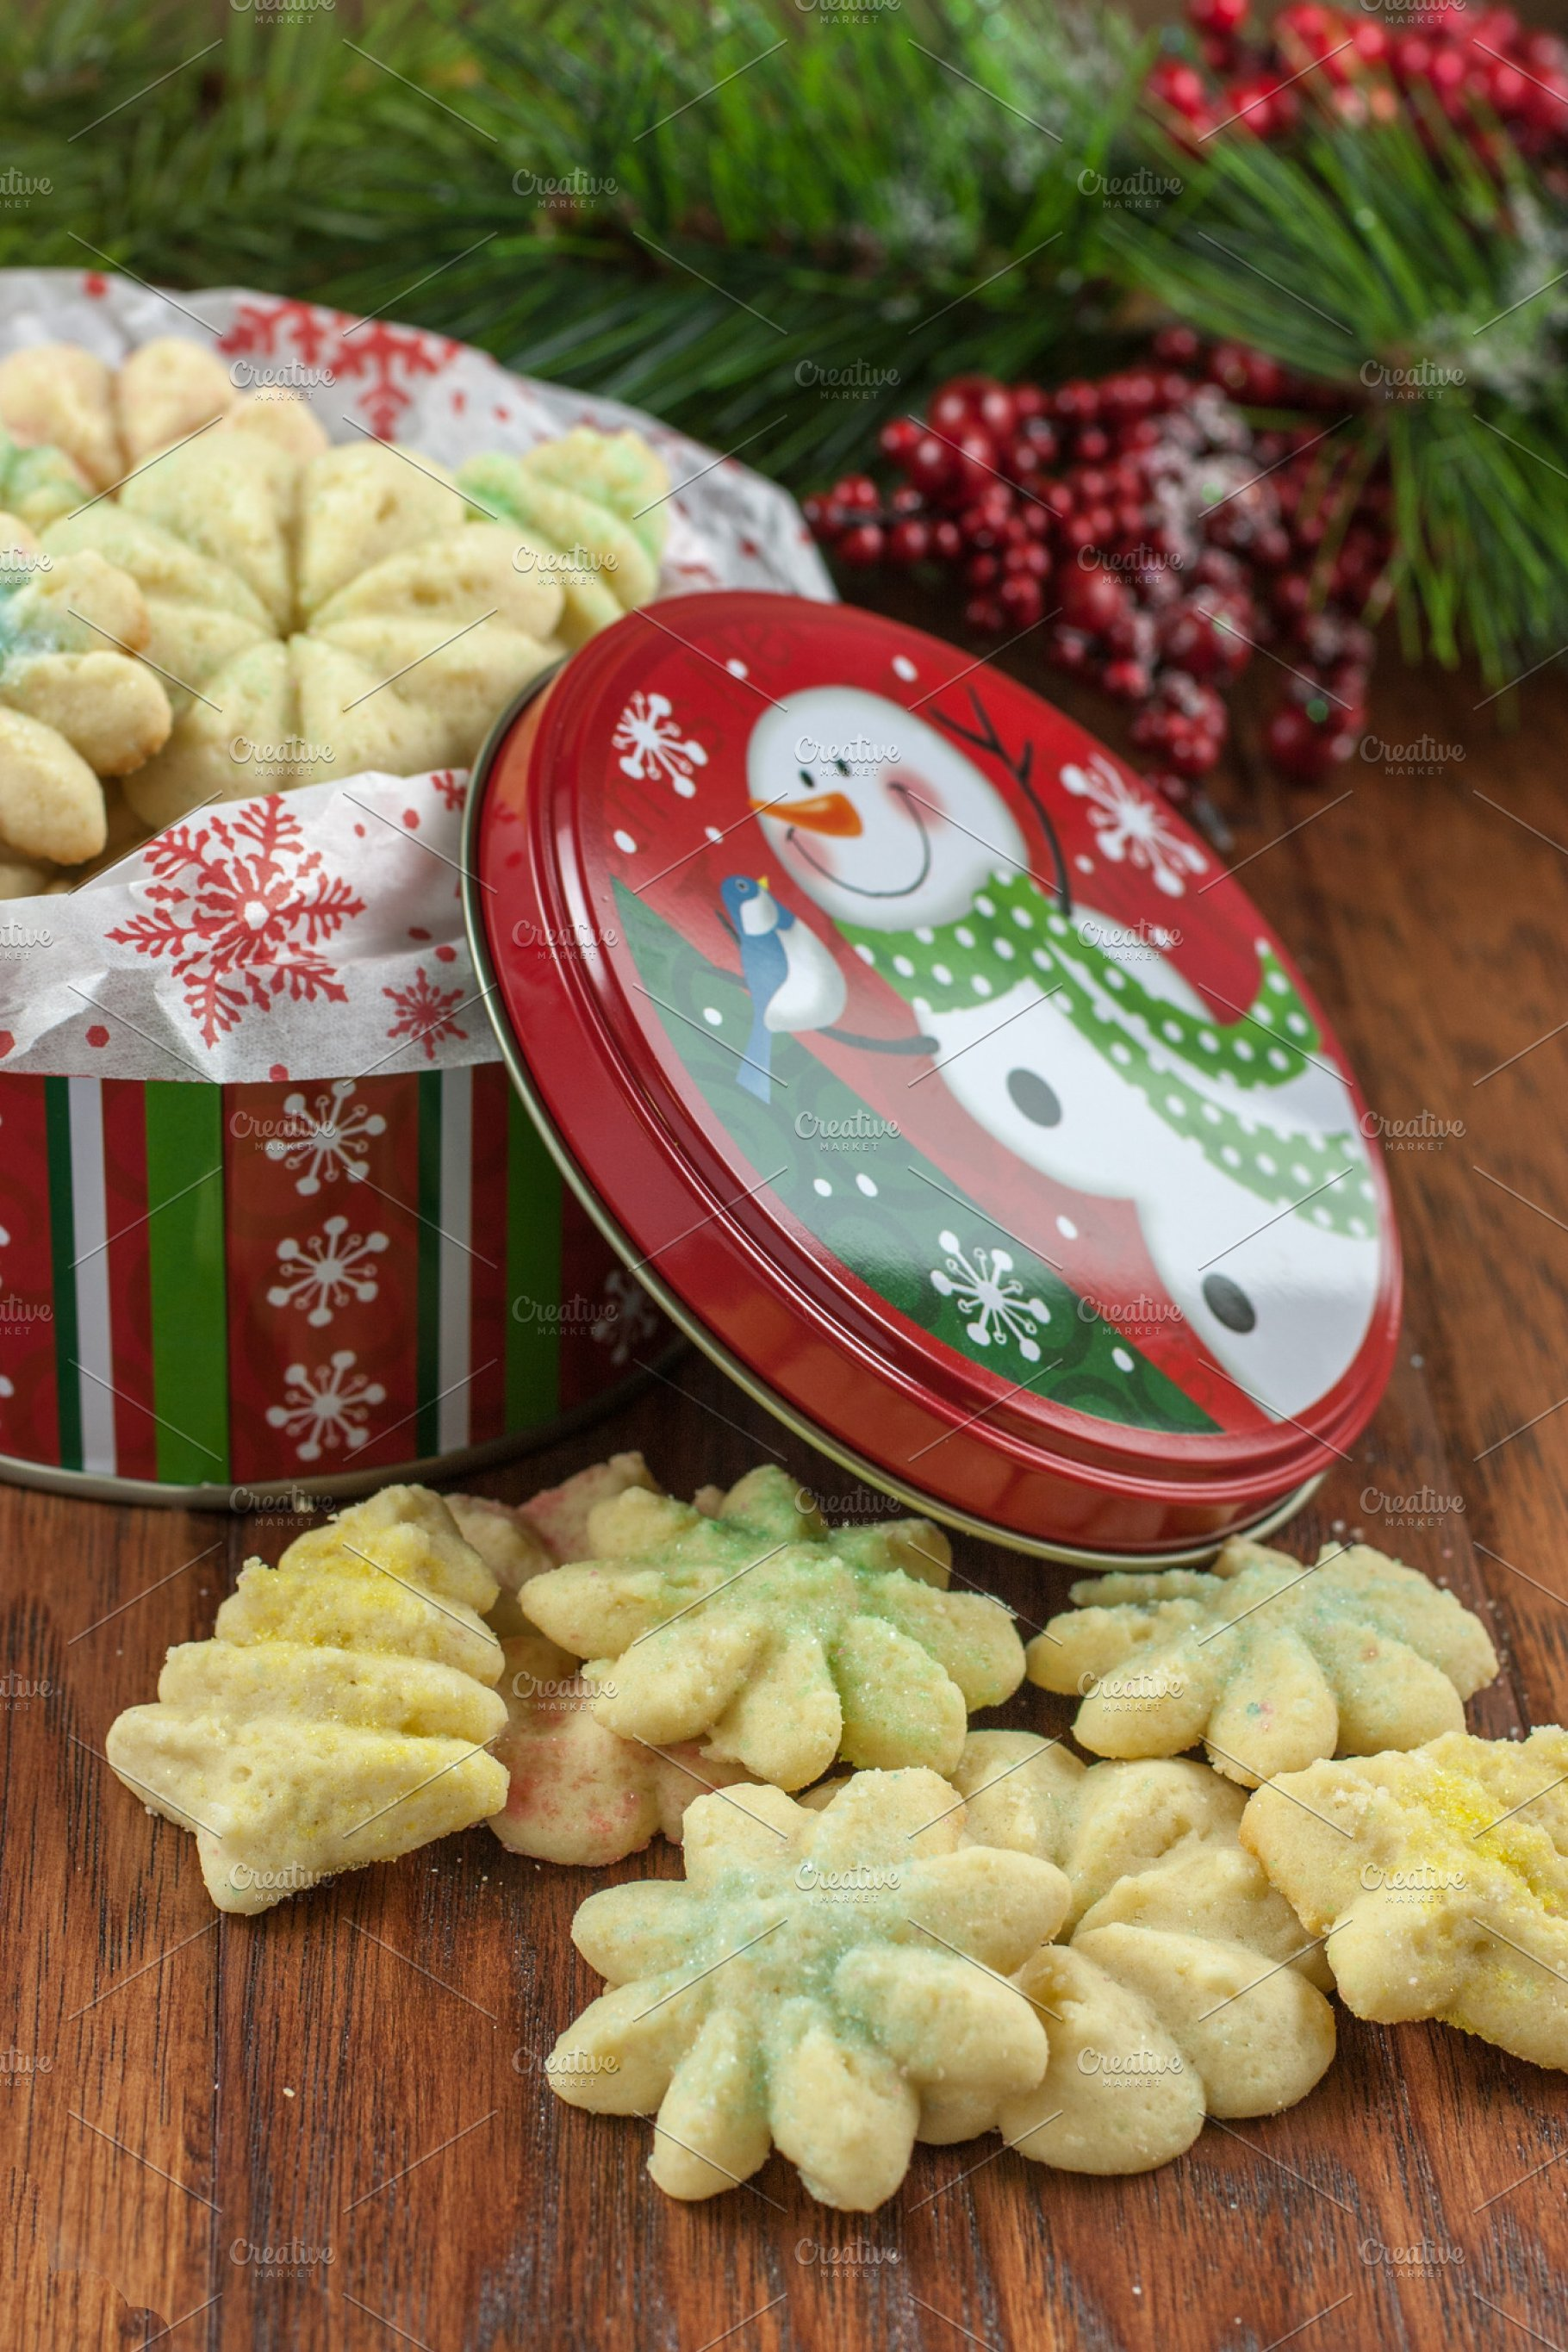 Christmas Tin Cookies.Christmas Cookies In A Decorated Tin